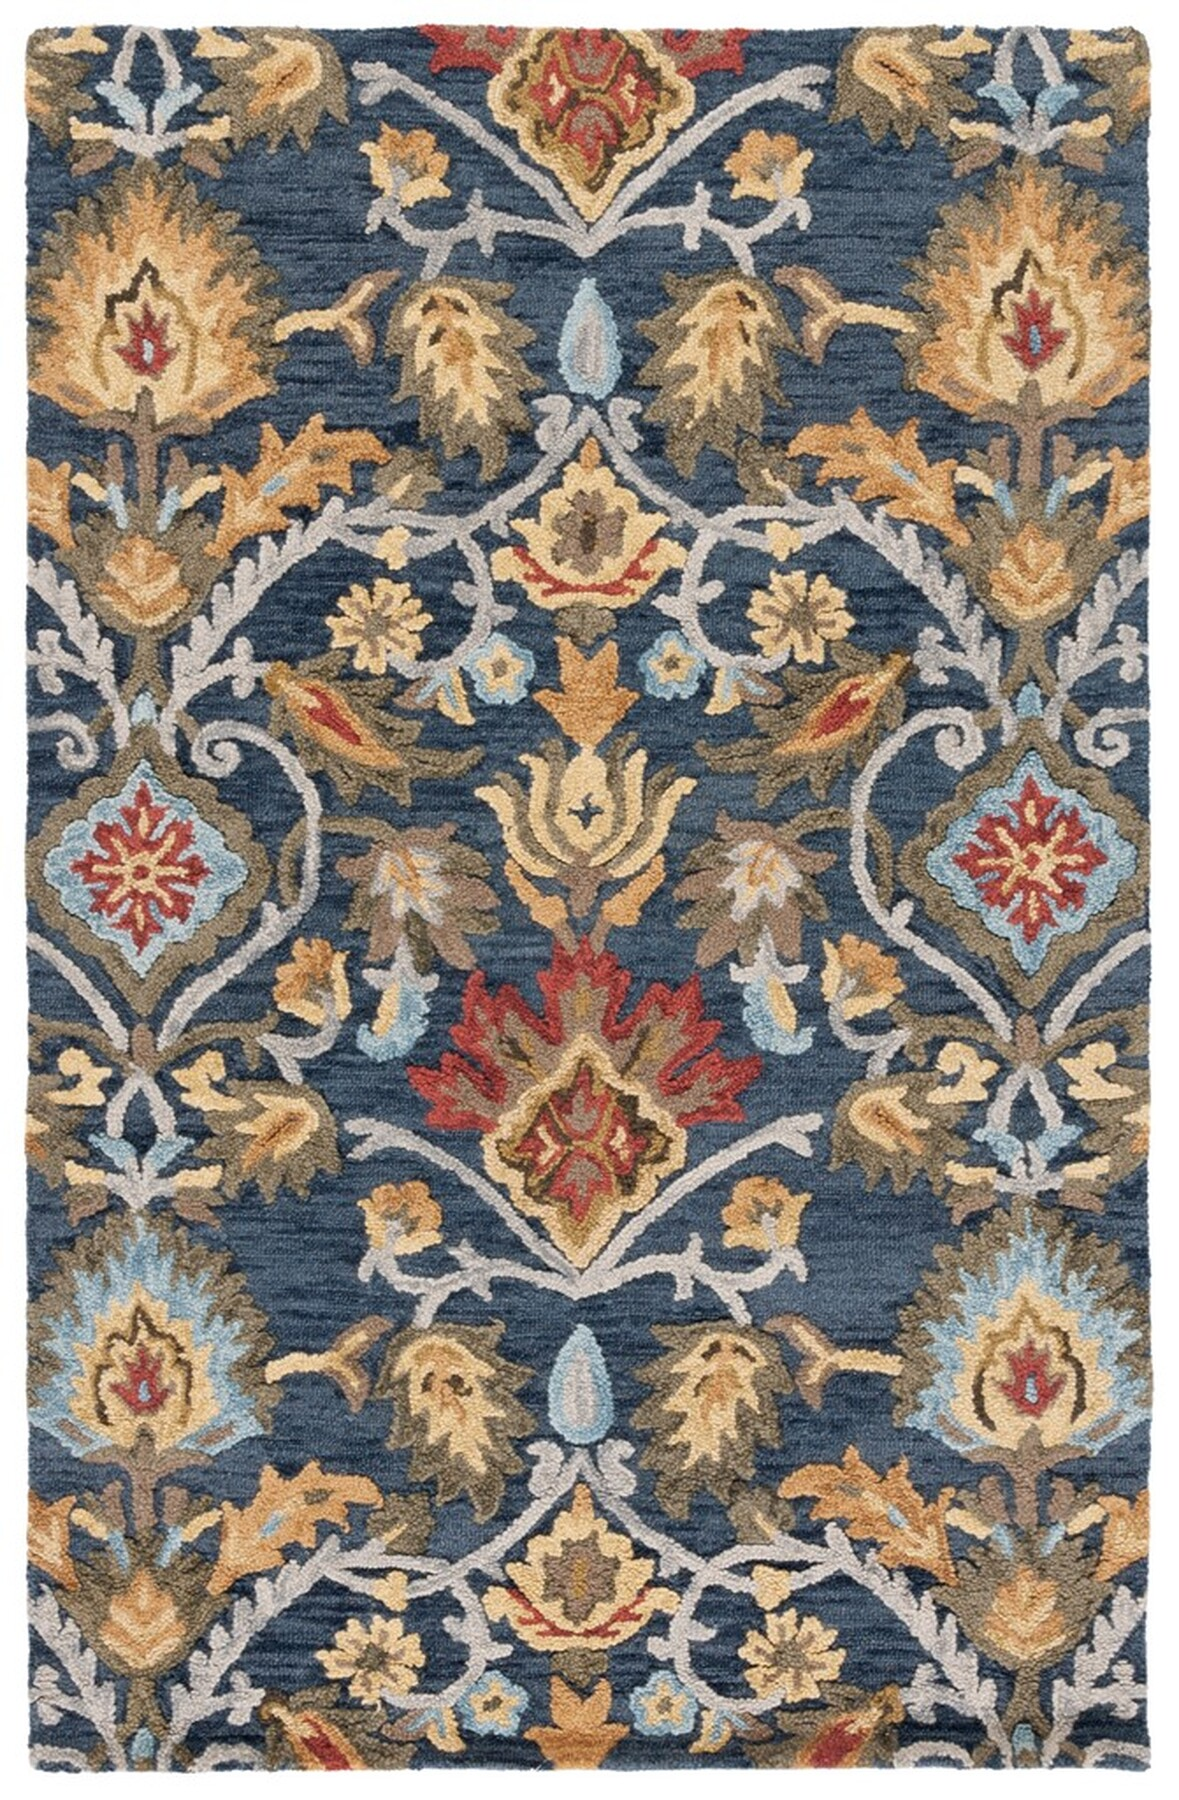 Rug Blm402a Blossom Area Rugs By Safavieh